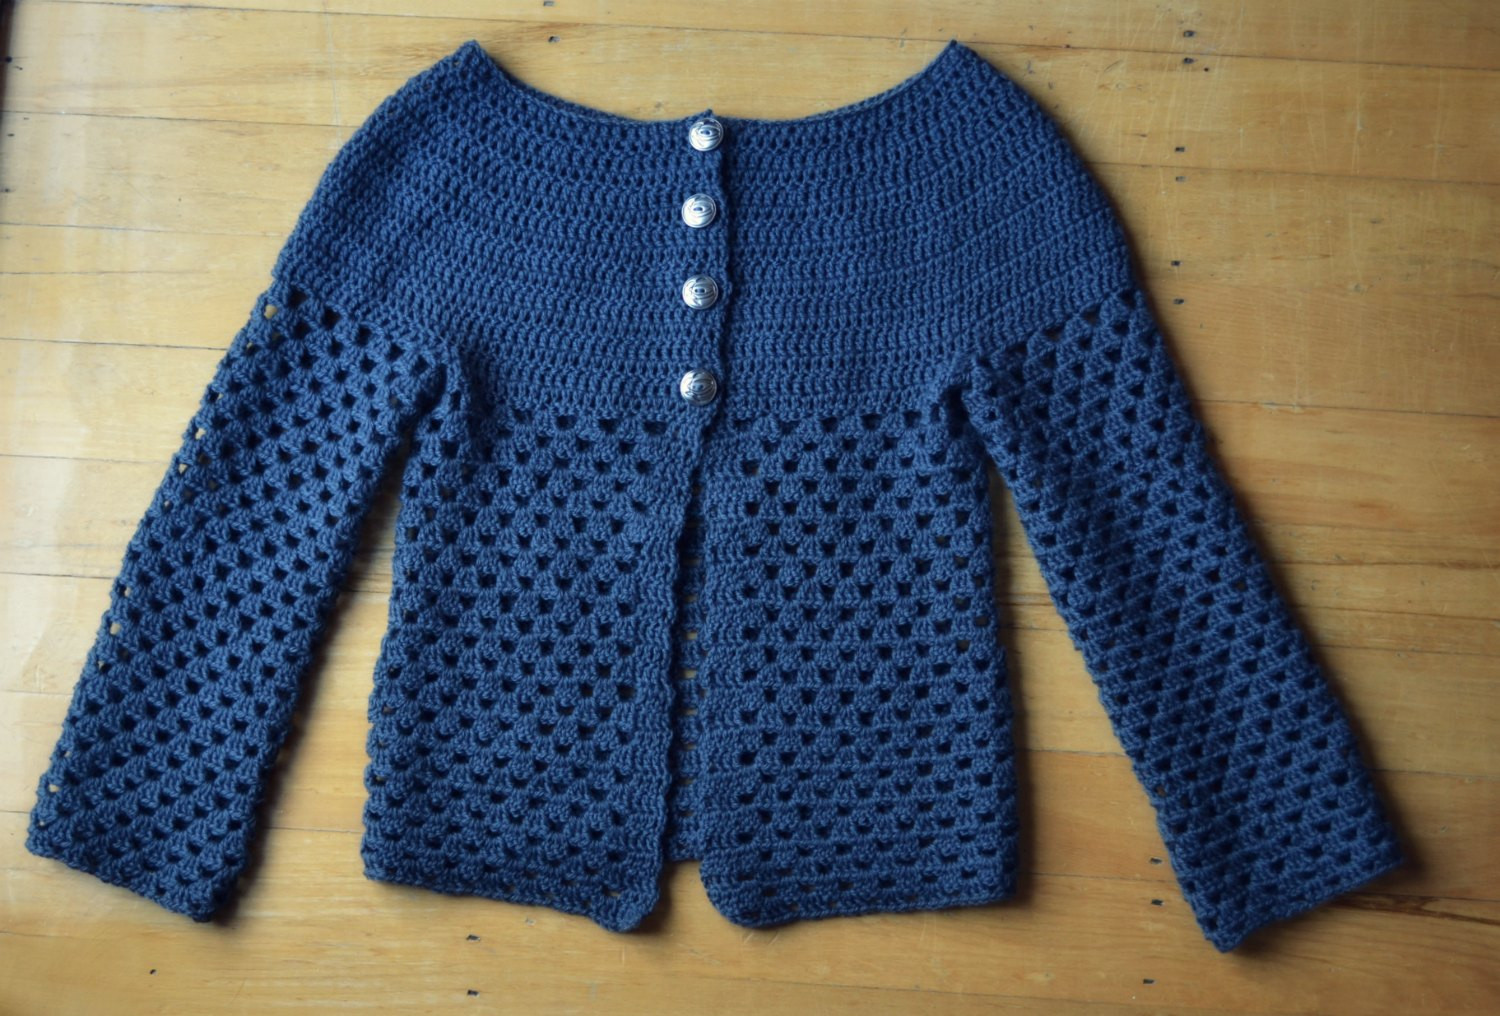 Sweater Crochet Patterns Luxury New Crochet Cardigan – the Green Dragonfly Of Amazing 49 Pictures Sweater Crochet Patterns